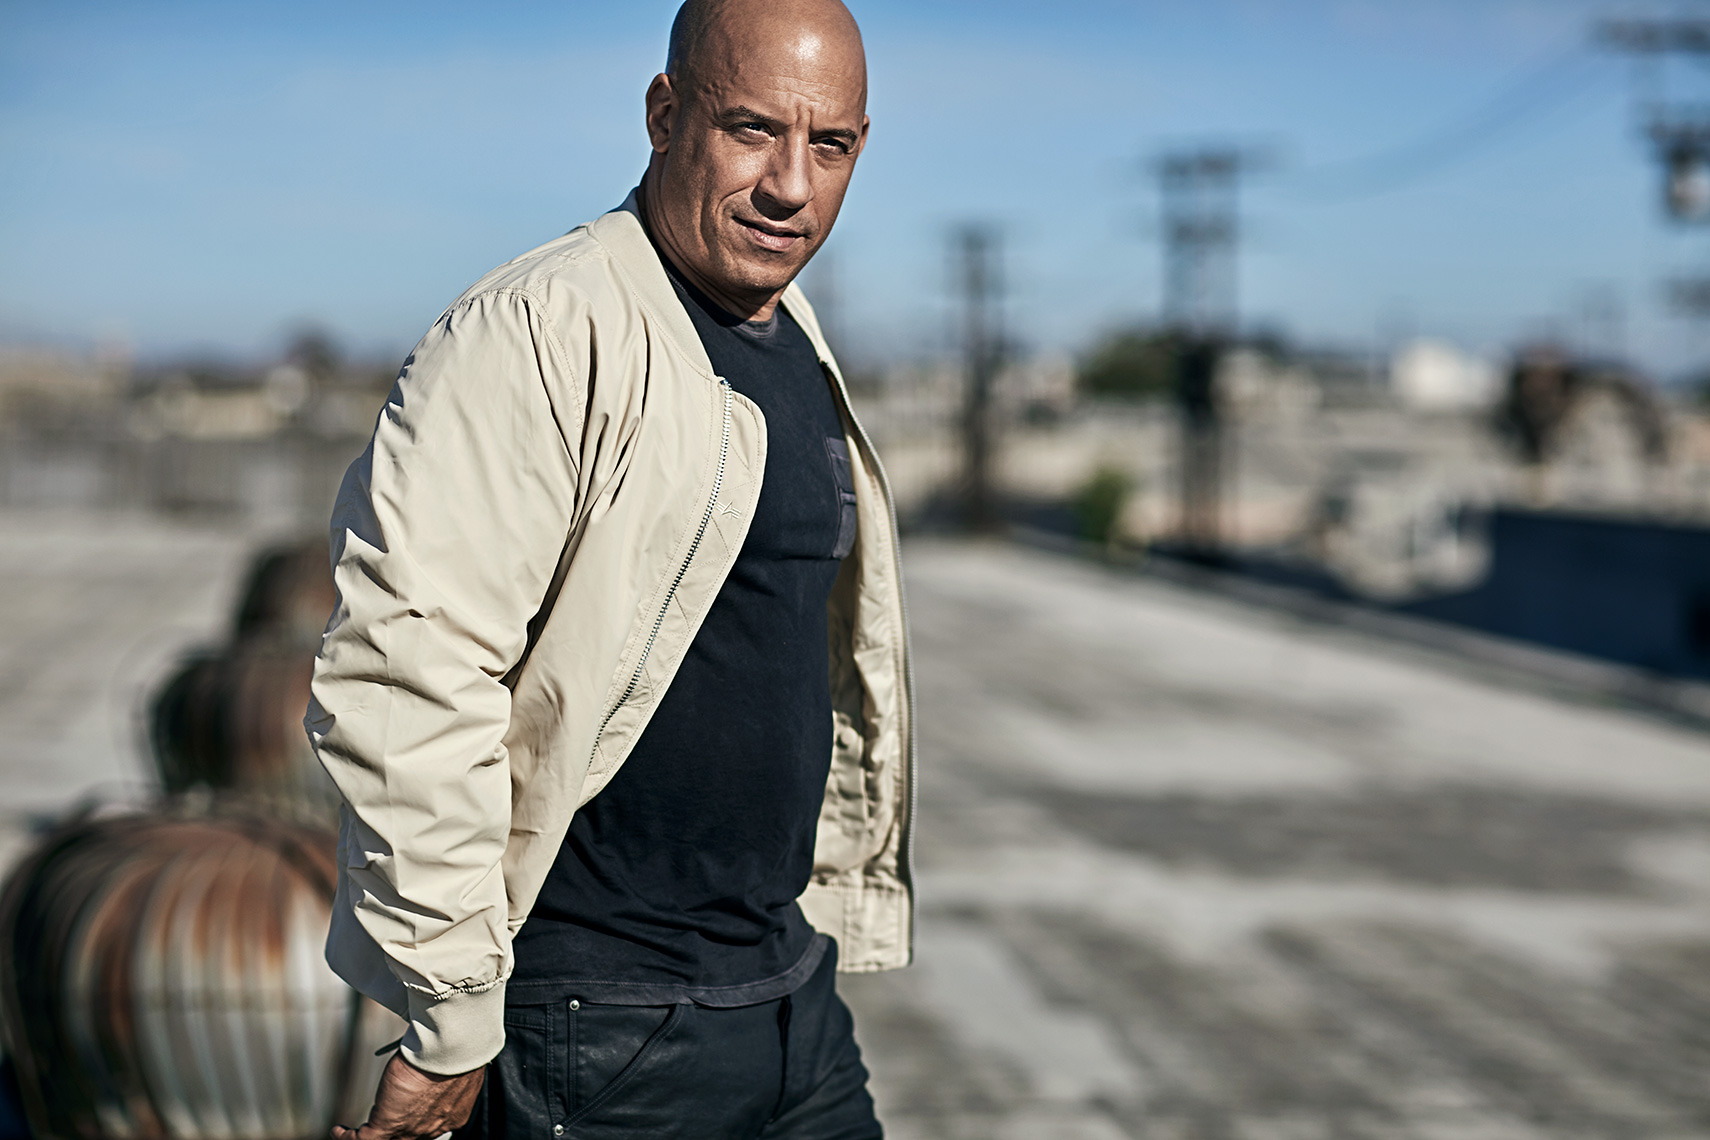 161010_PG_MHUK_VinDiesel_Shot04_0879-Recovered